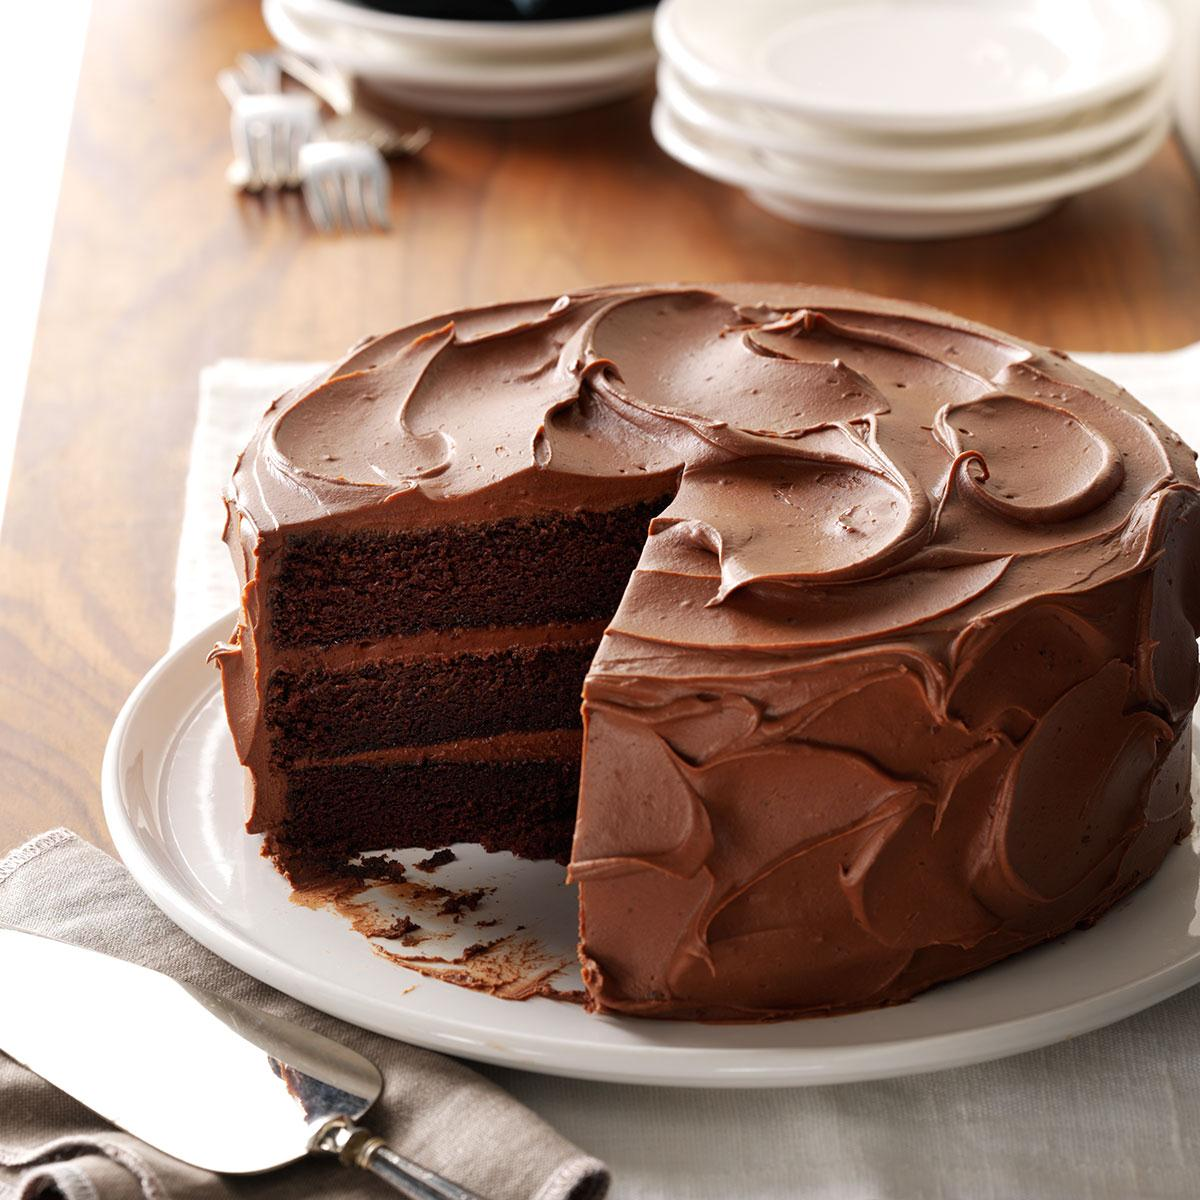 Sandys Chocolate Cake Recipe